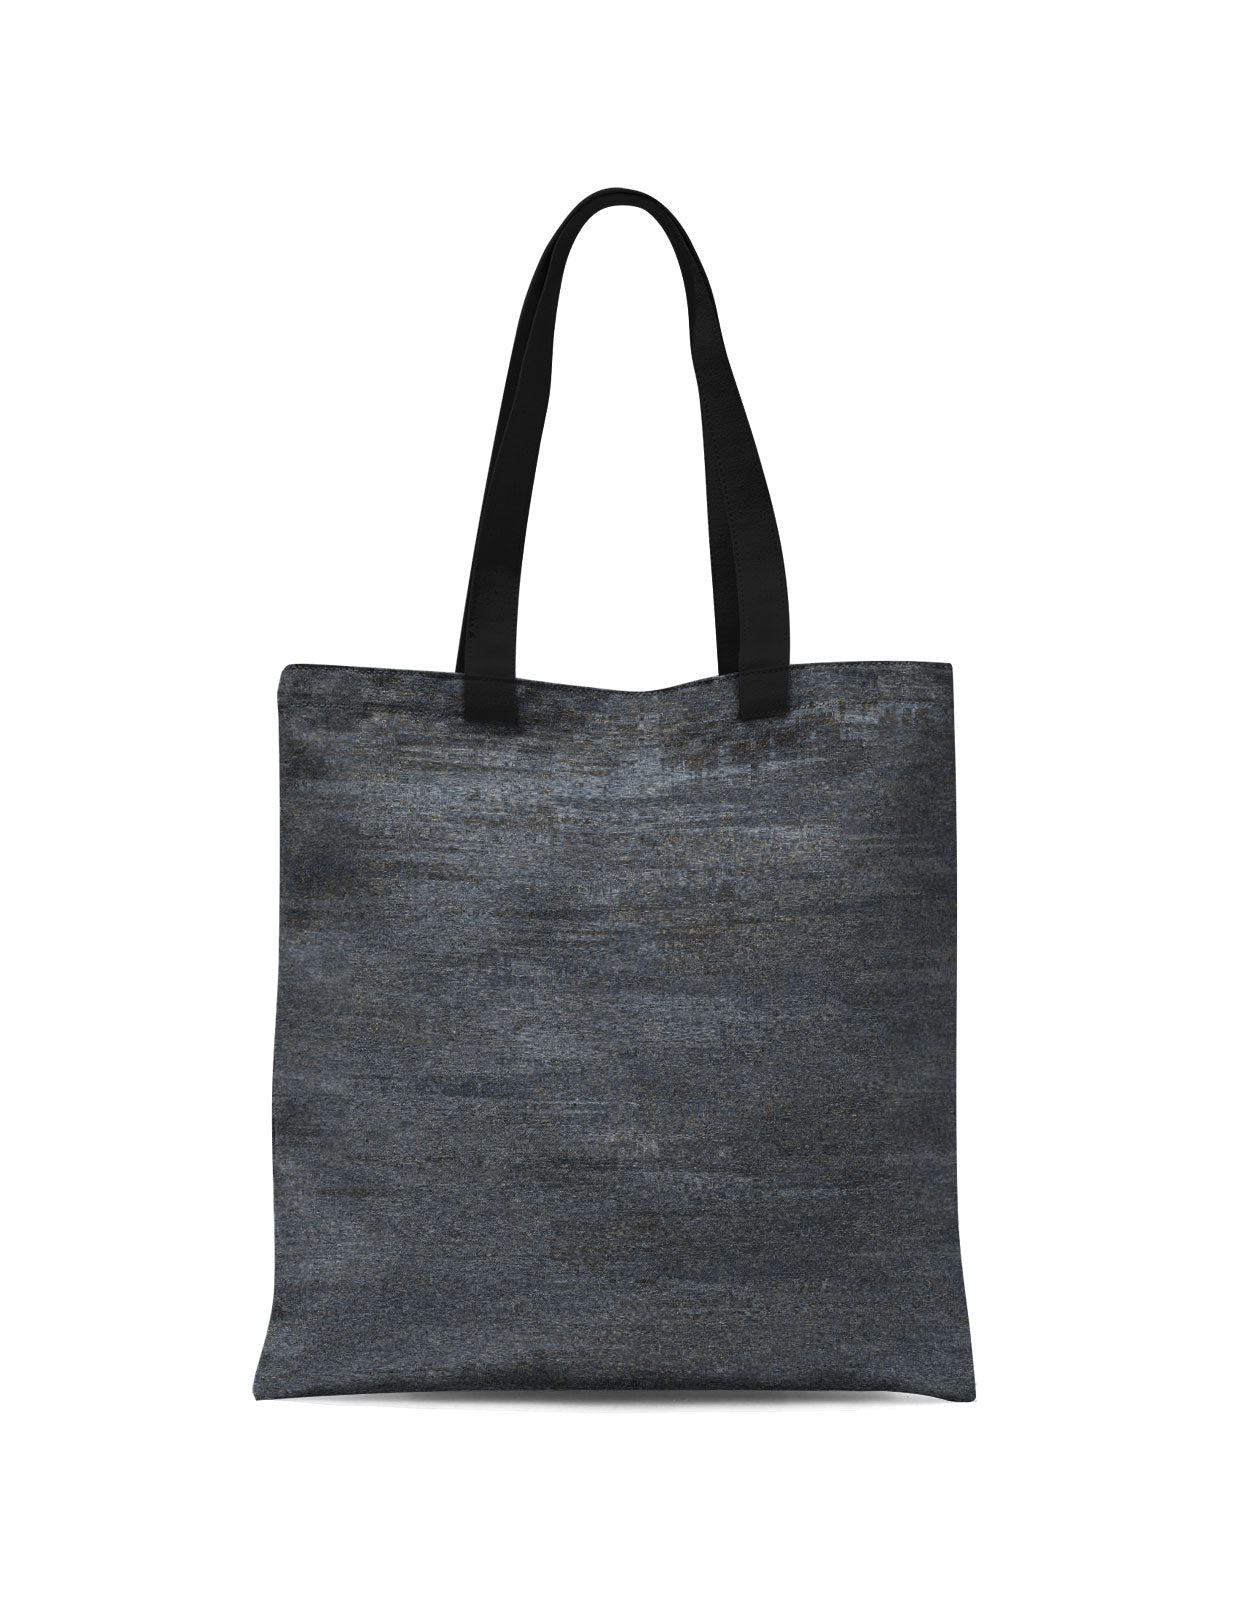 Abstra Minimal - Warm Grey Canvas Tote